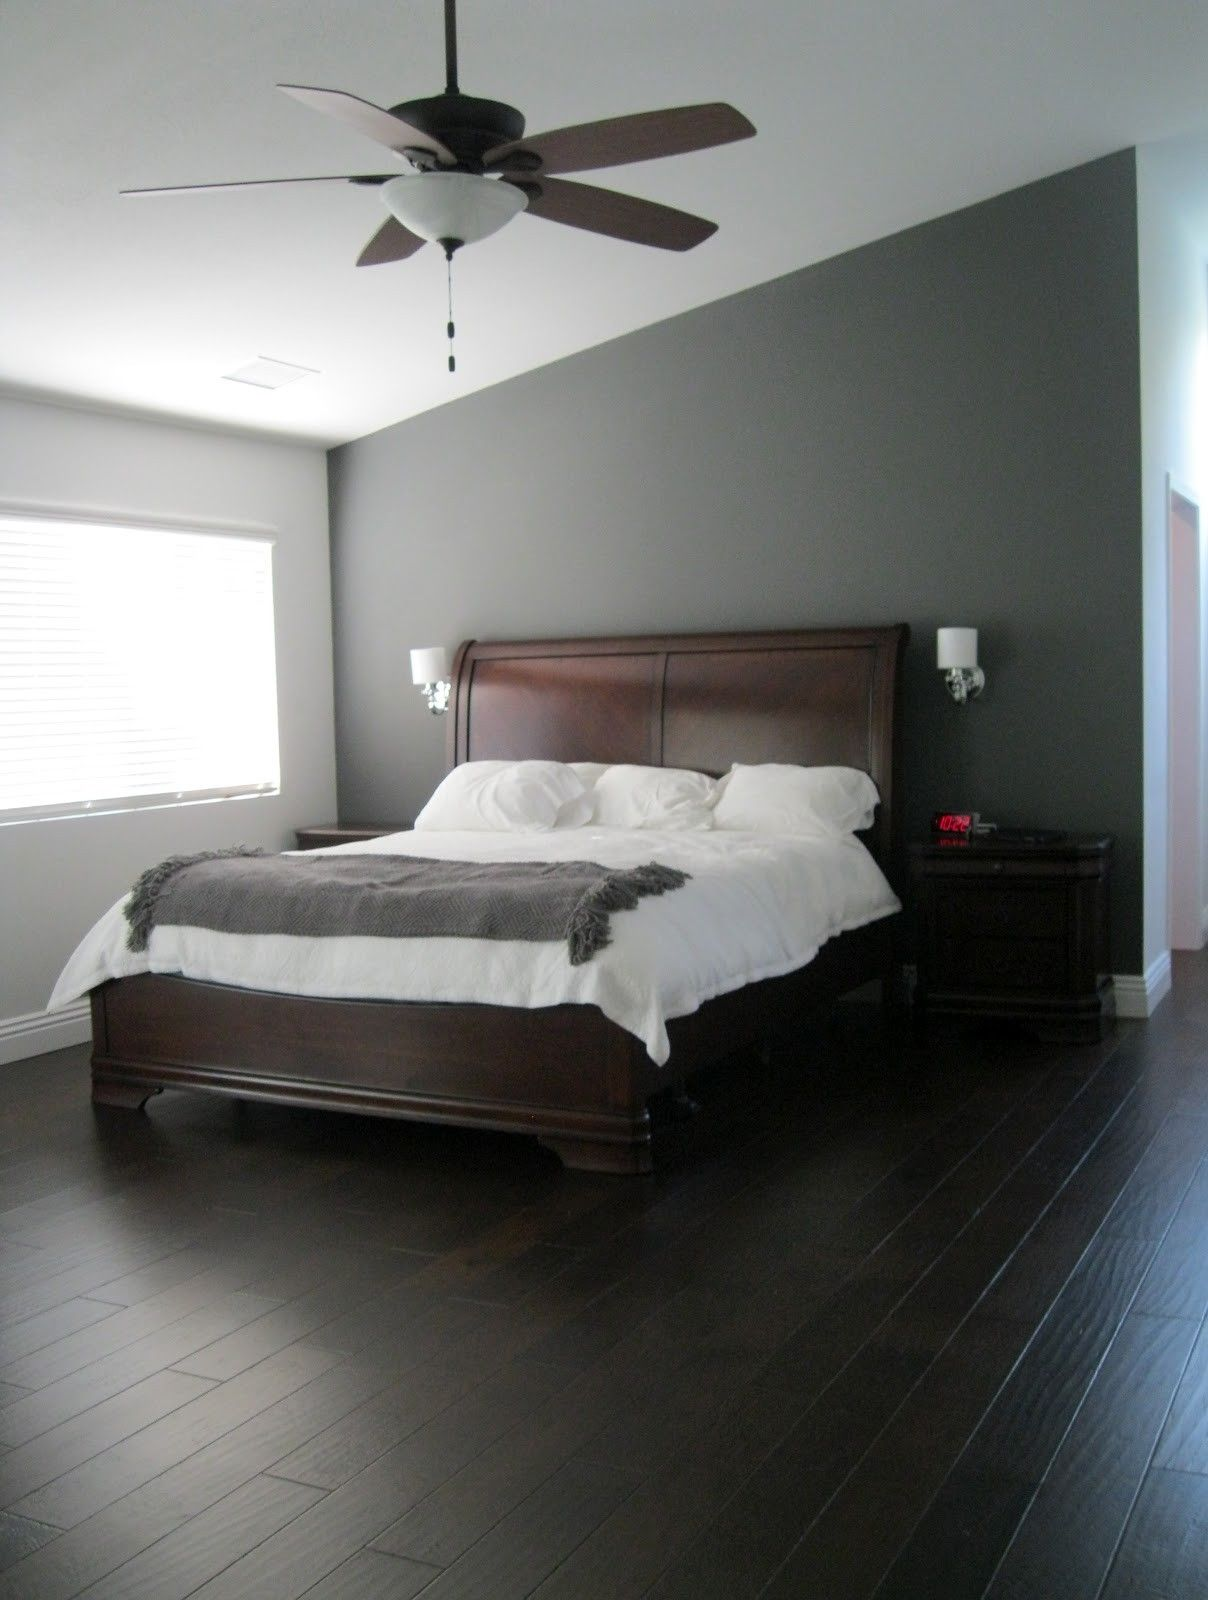 Very Popular Unique Brown Wooden Master Bed Plus Headboard With White  Covering Beds And Smart Wood Floors Installation With Unique Pendant Bedroom  Lights ...